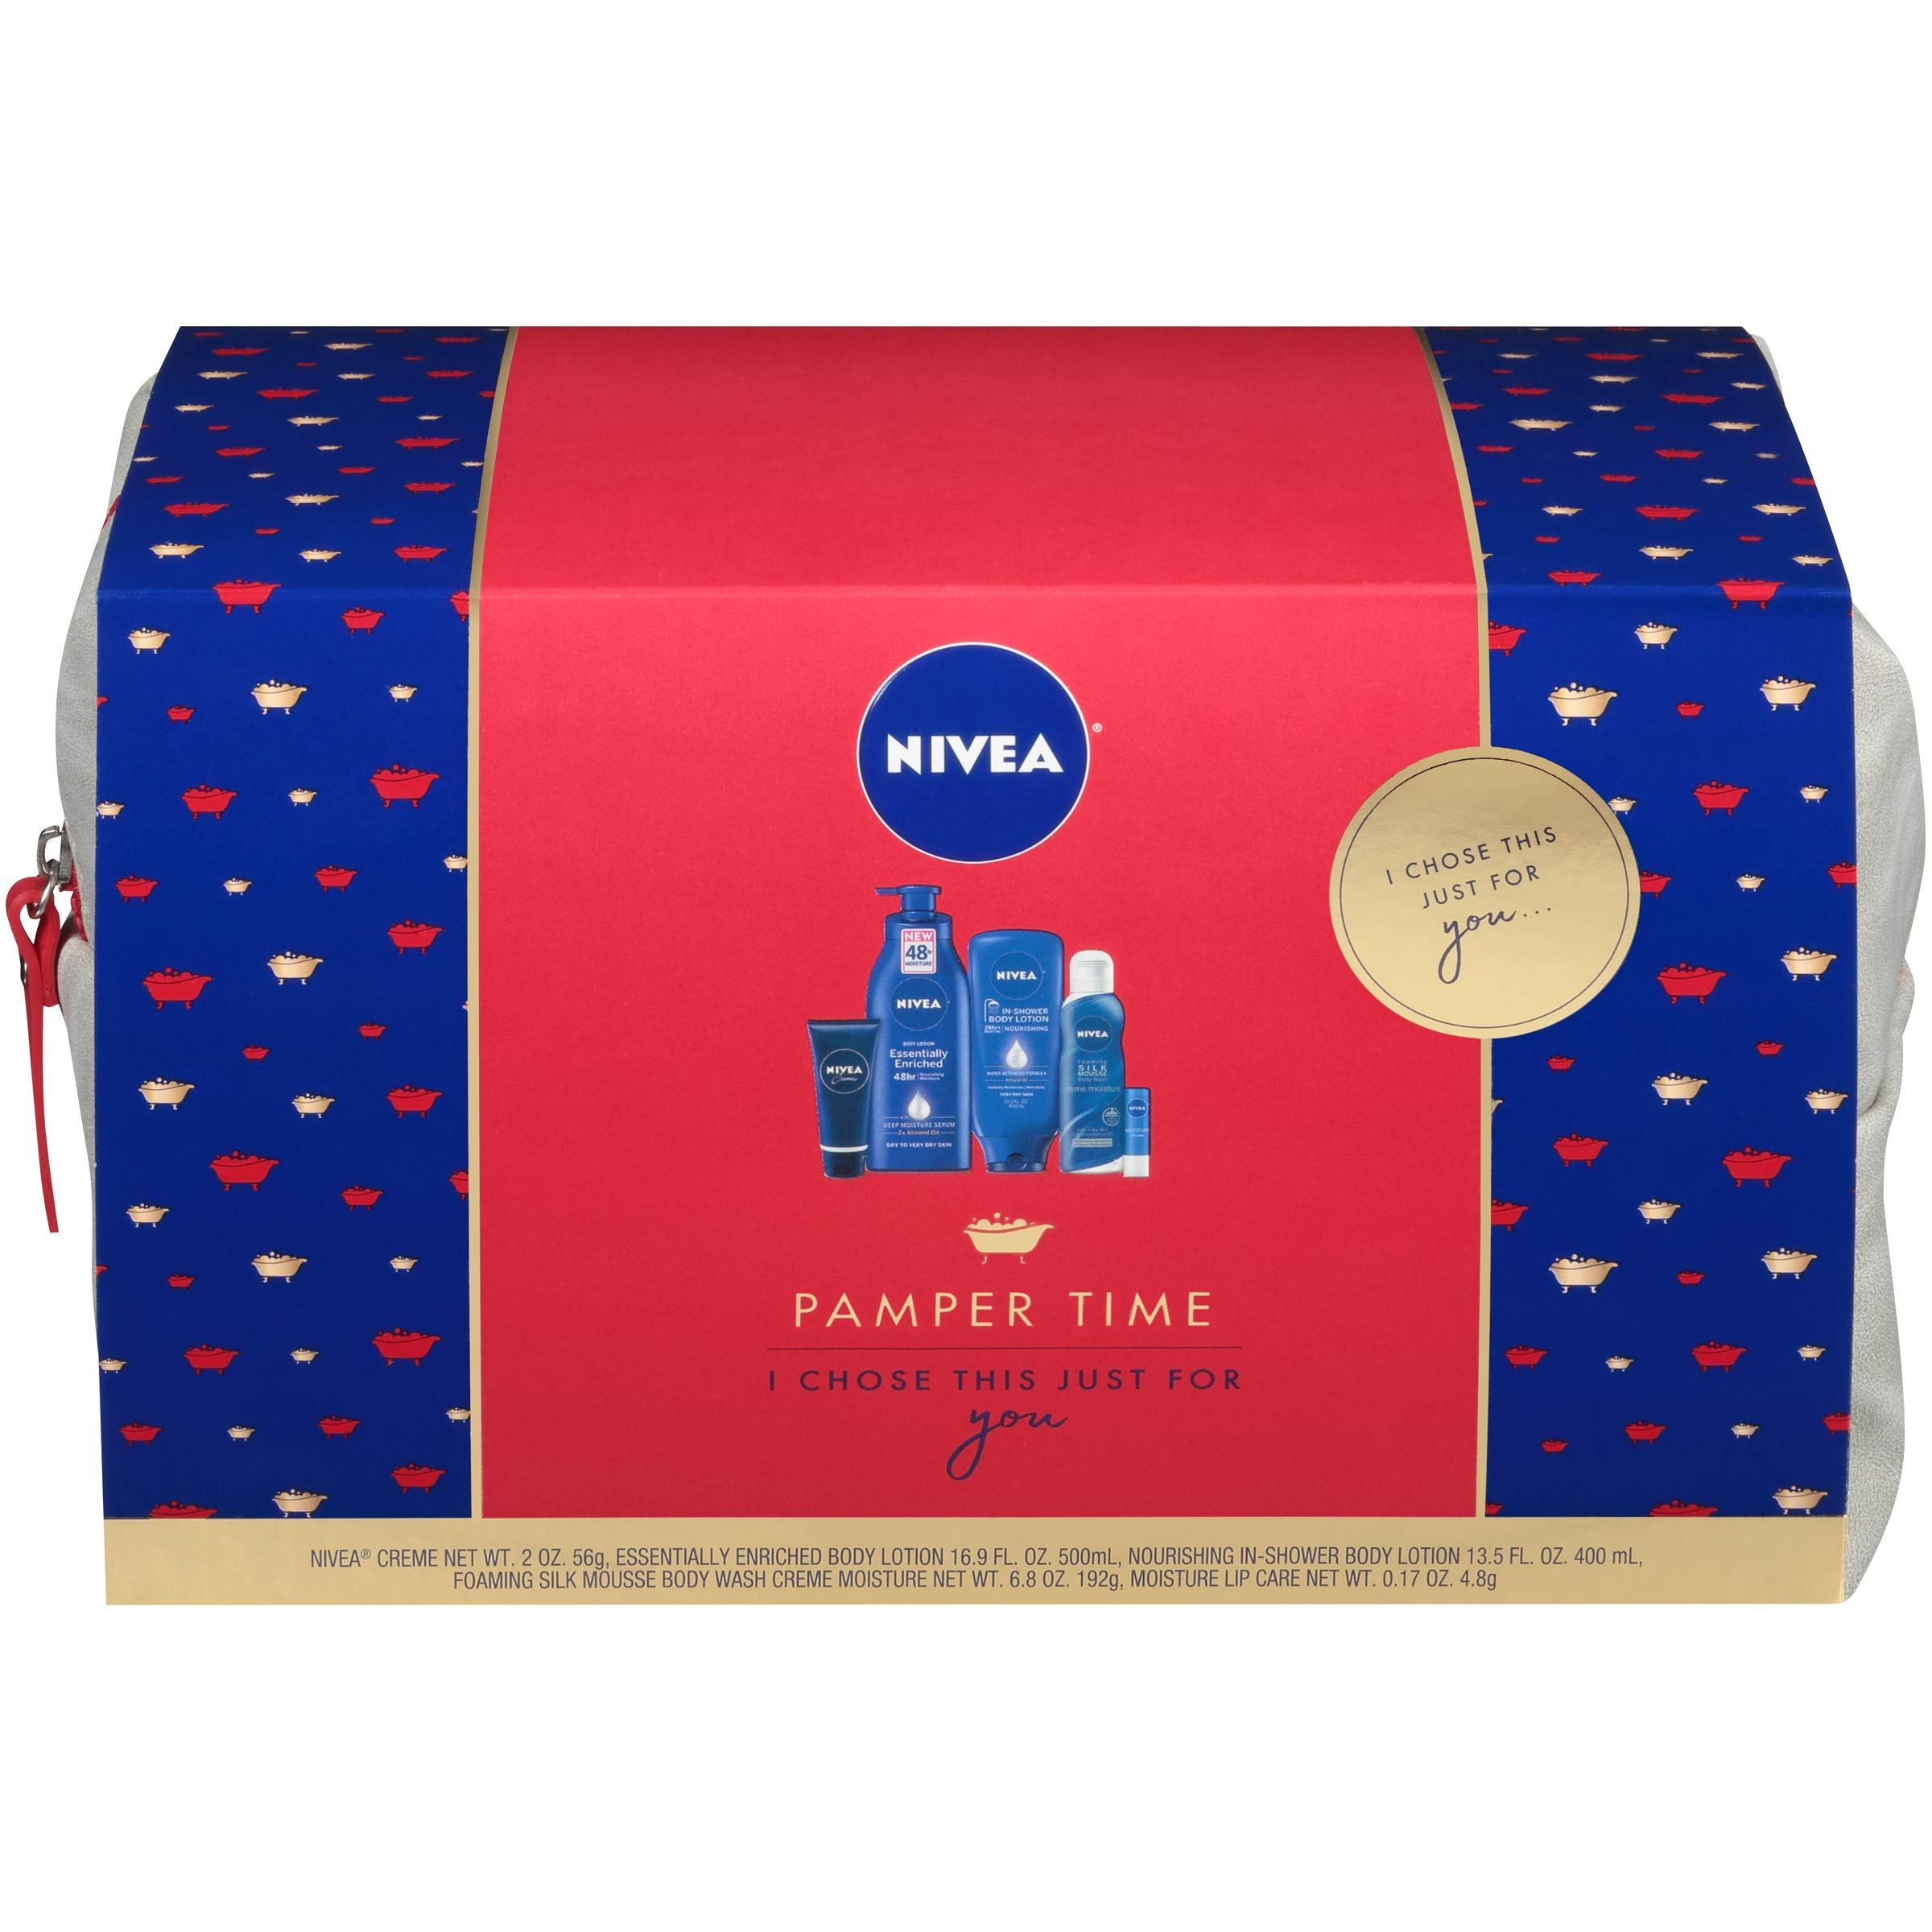 NIVEA Pamper Time Gift Set - 5 Piece Luxury Collection of Moisturizing Products and Travel Bag Included by Nivea